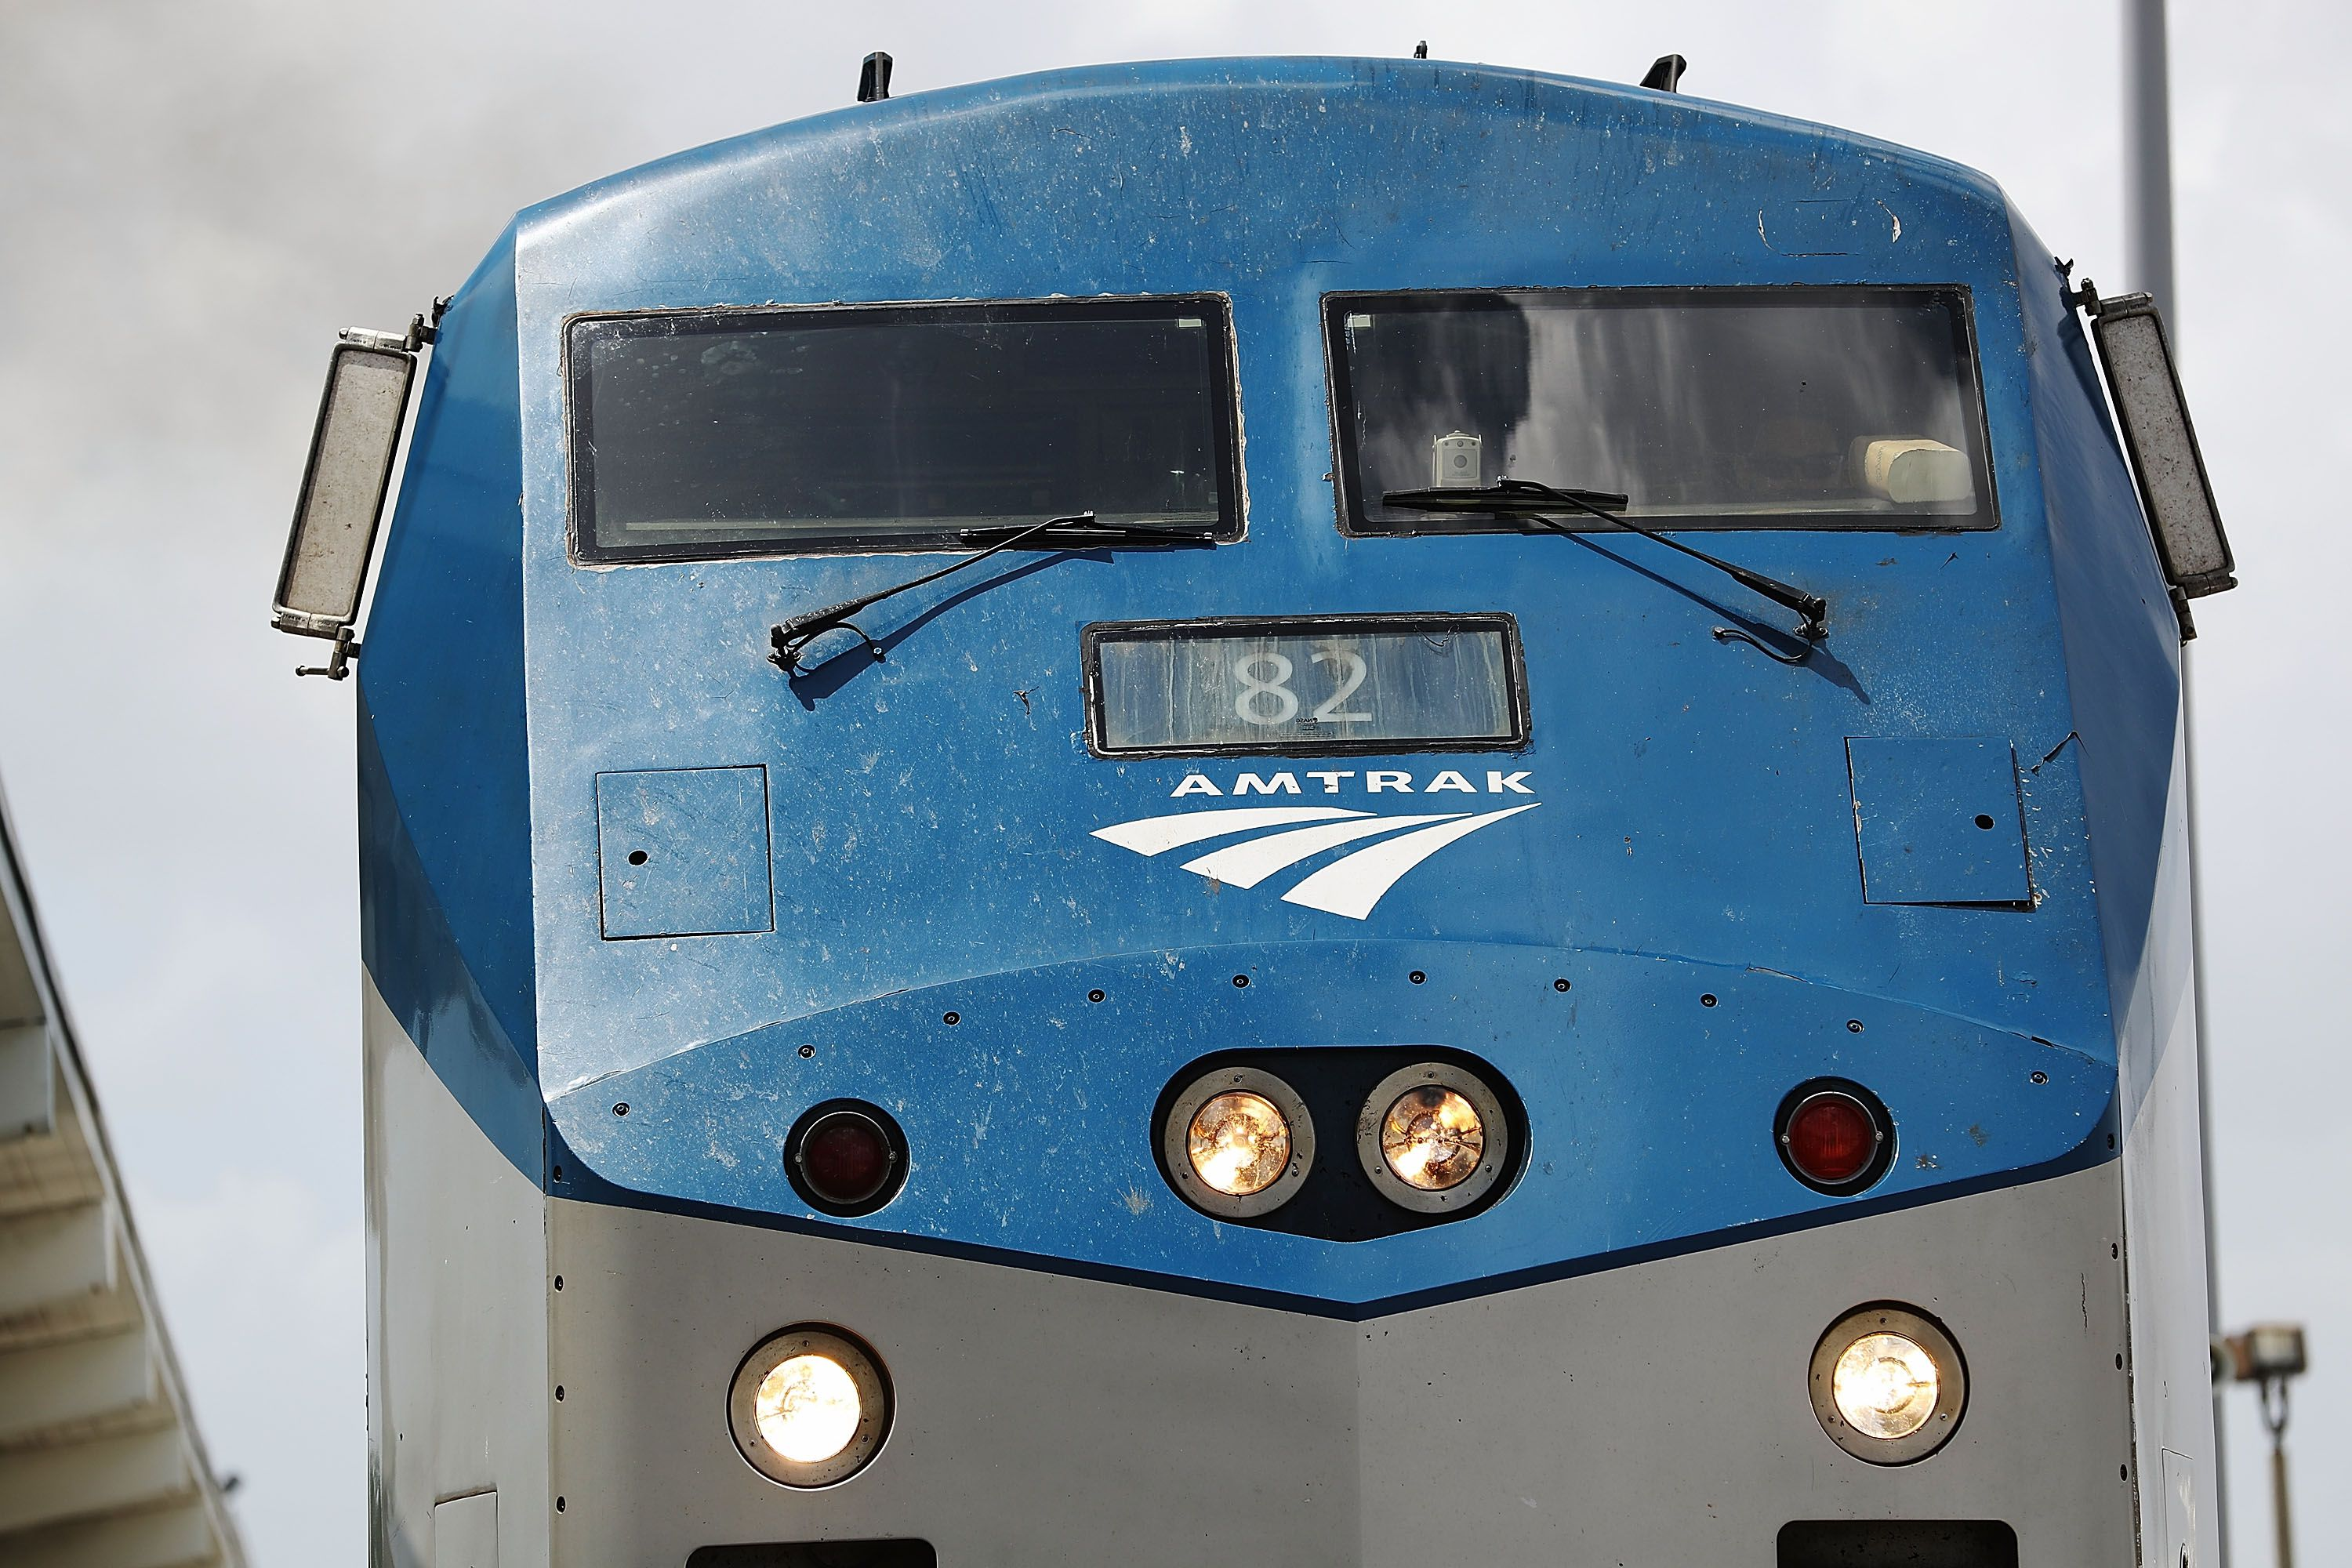 Amtrak train and tractor-trailer collide in Maryland